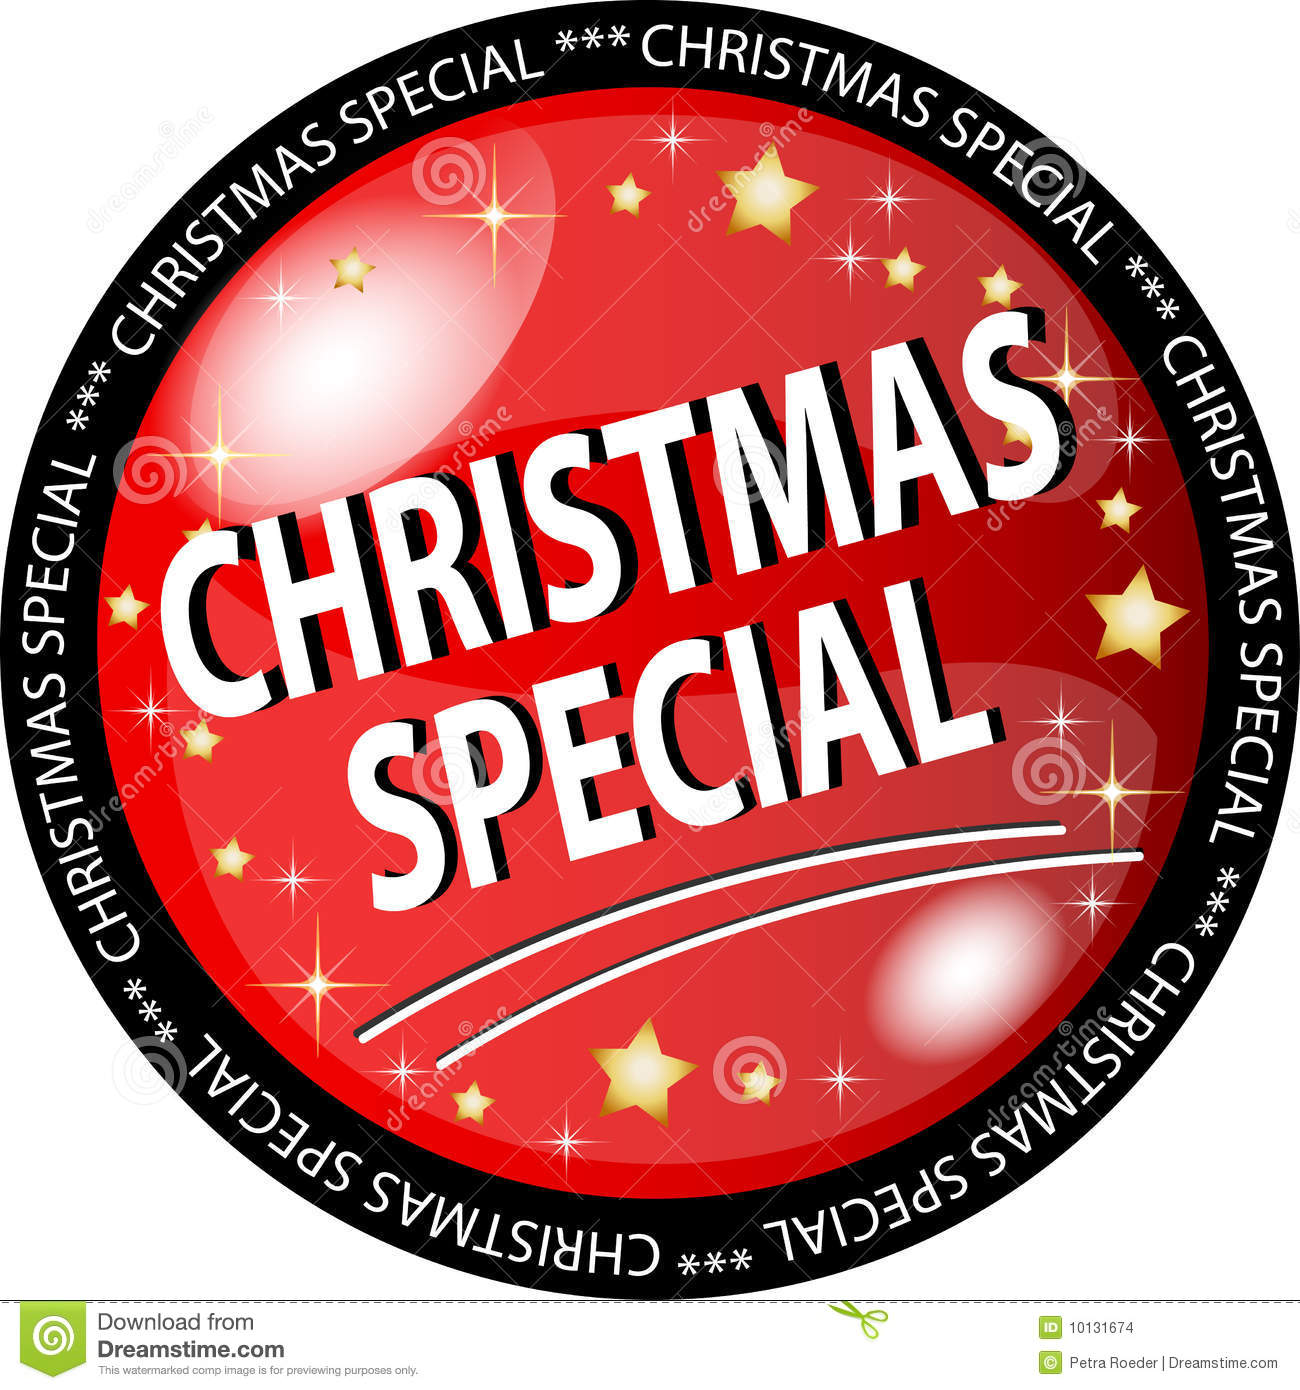 red christmas special button vector illustration - Christmas Special